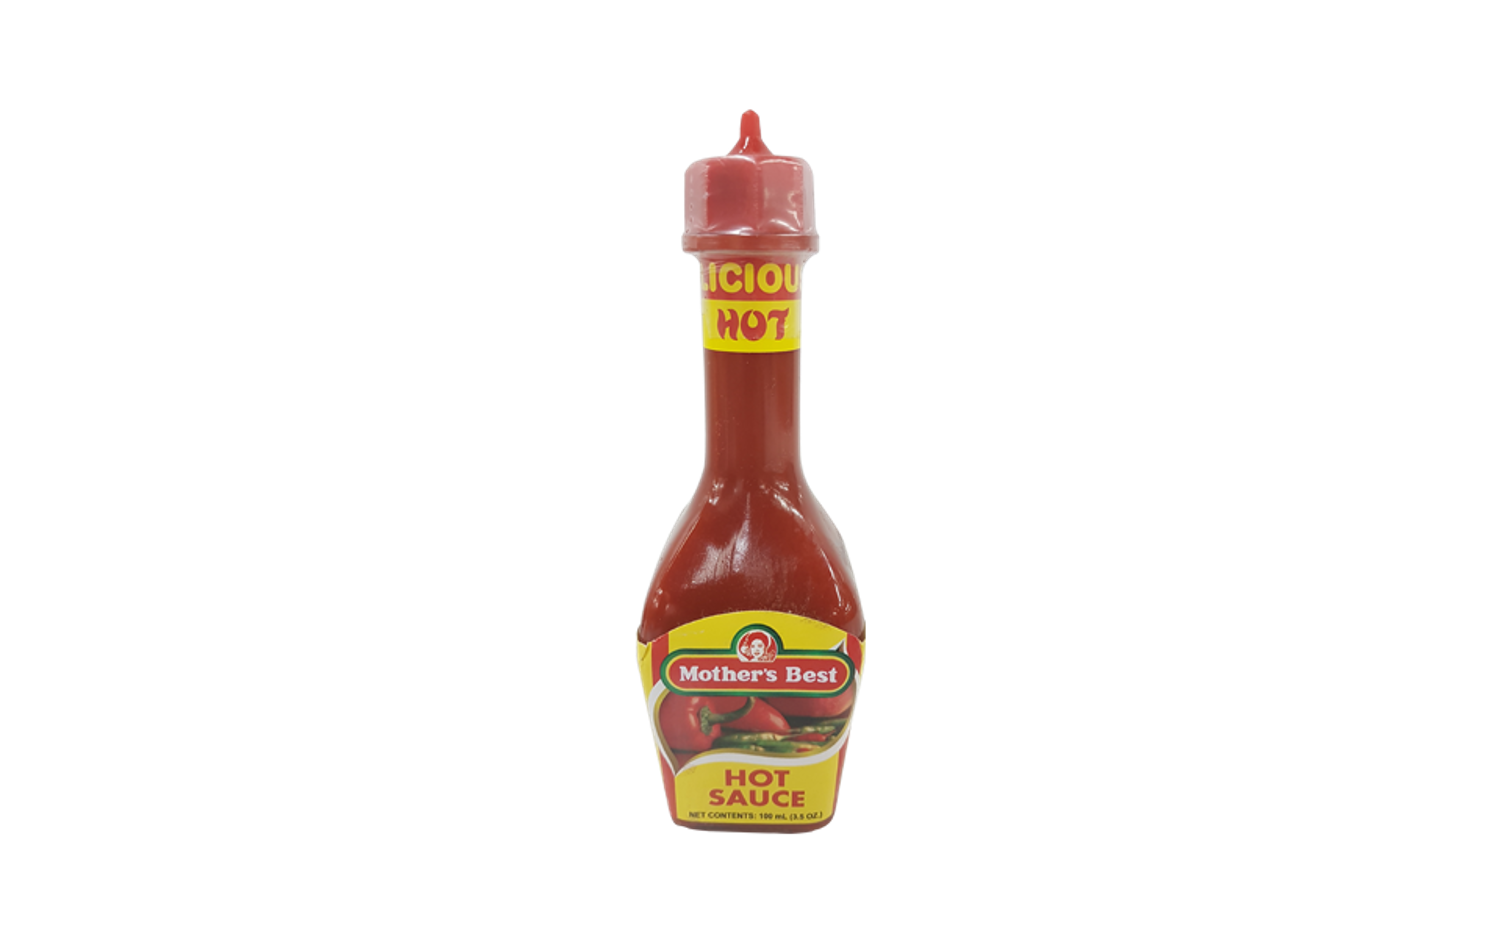 MOTHER'S BEST HOT SAUCE